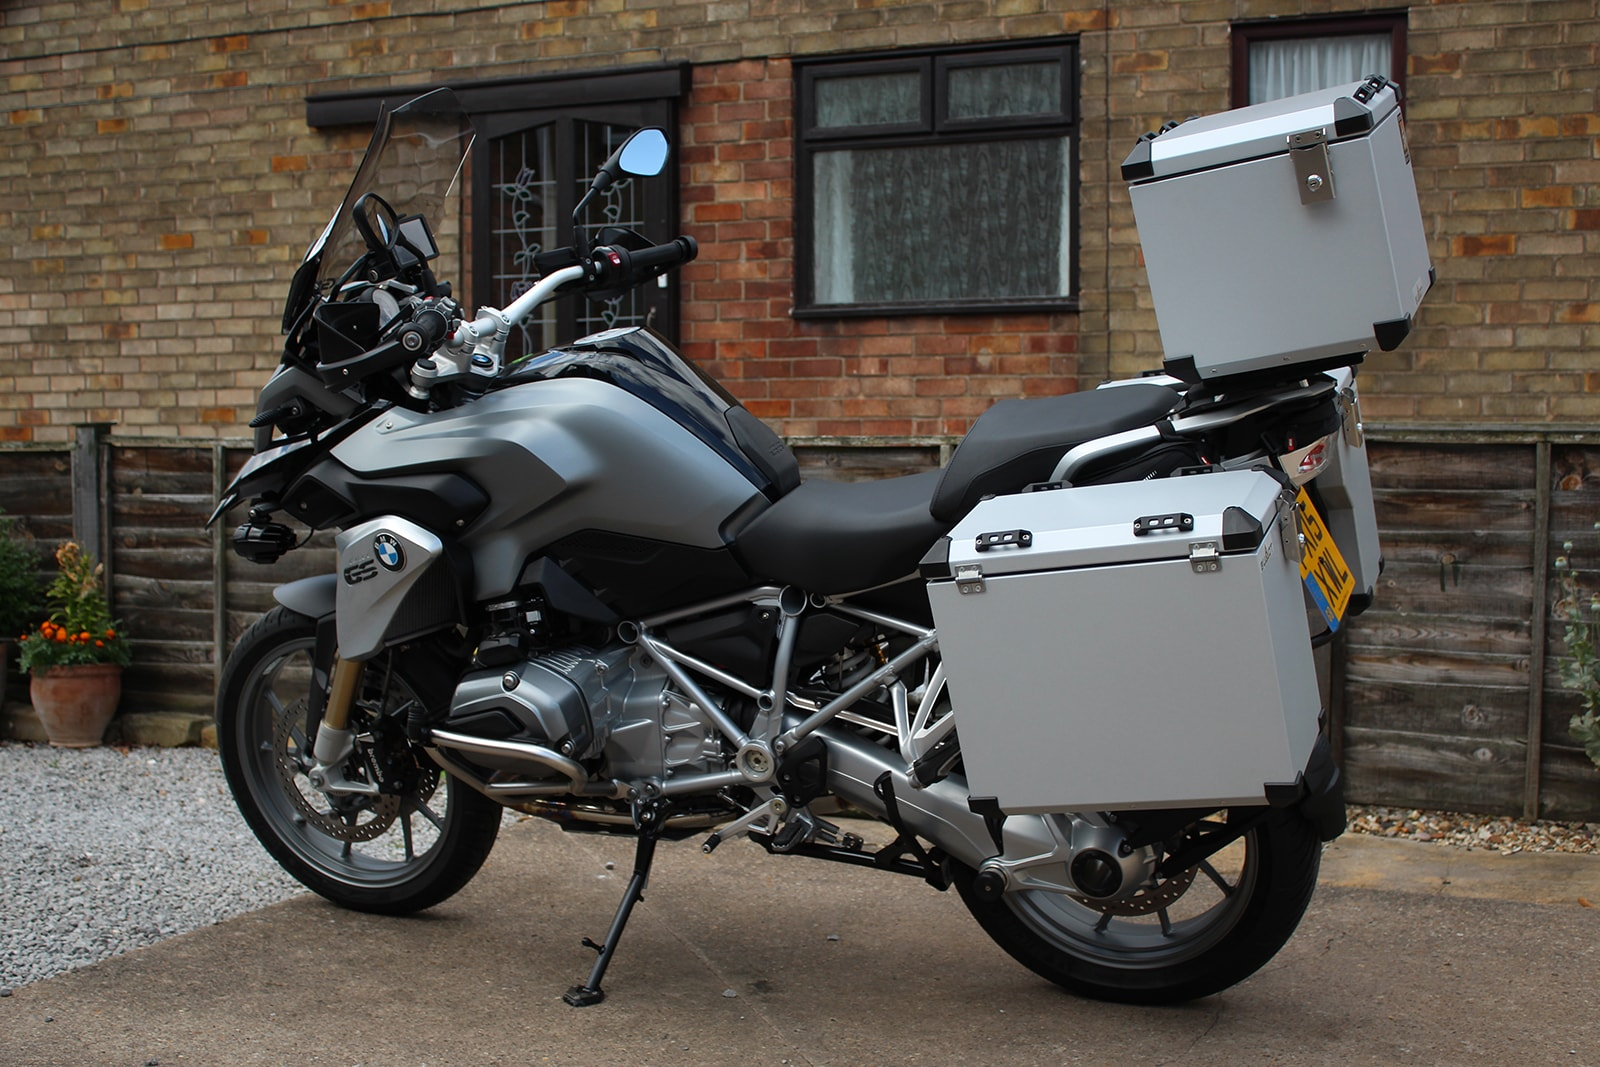 Panniers system